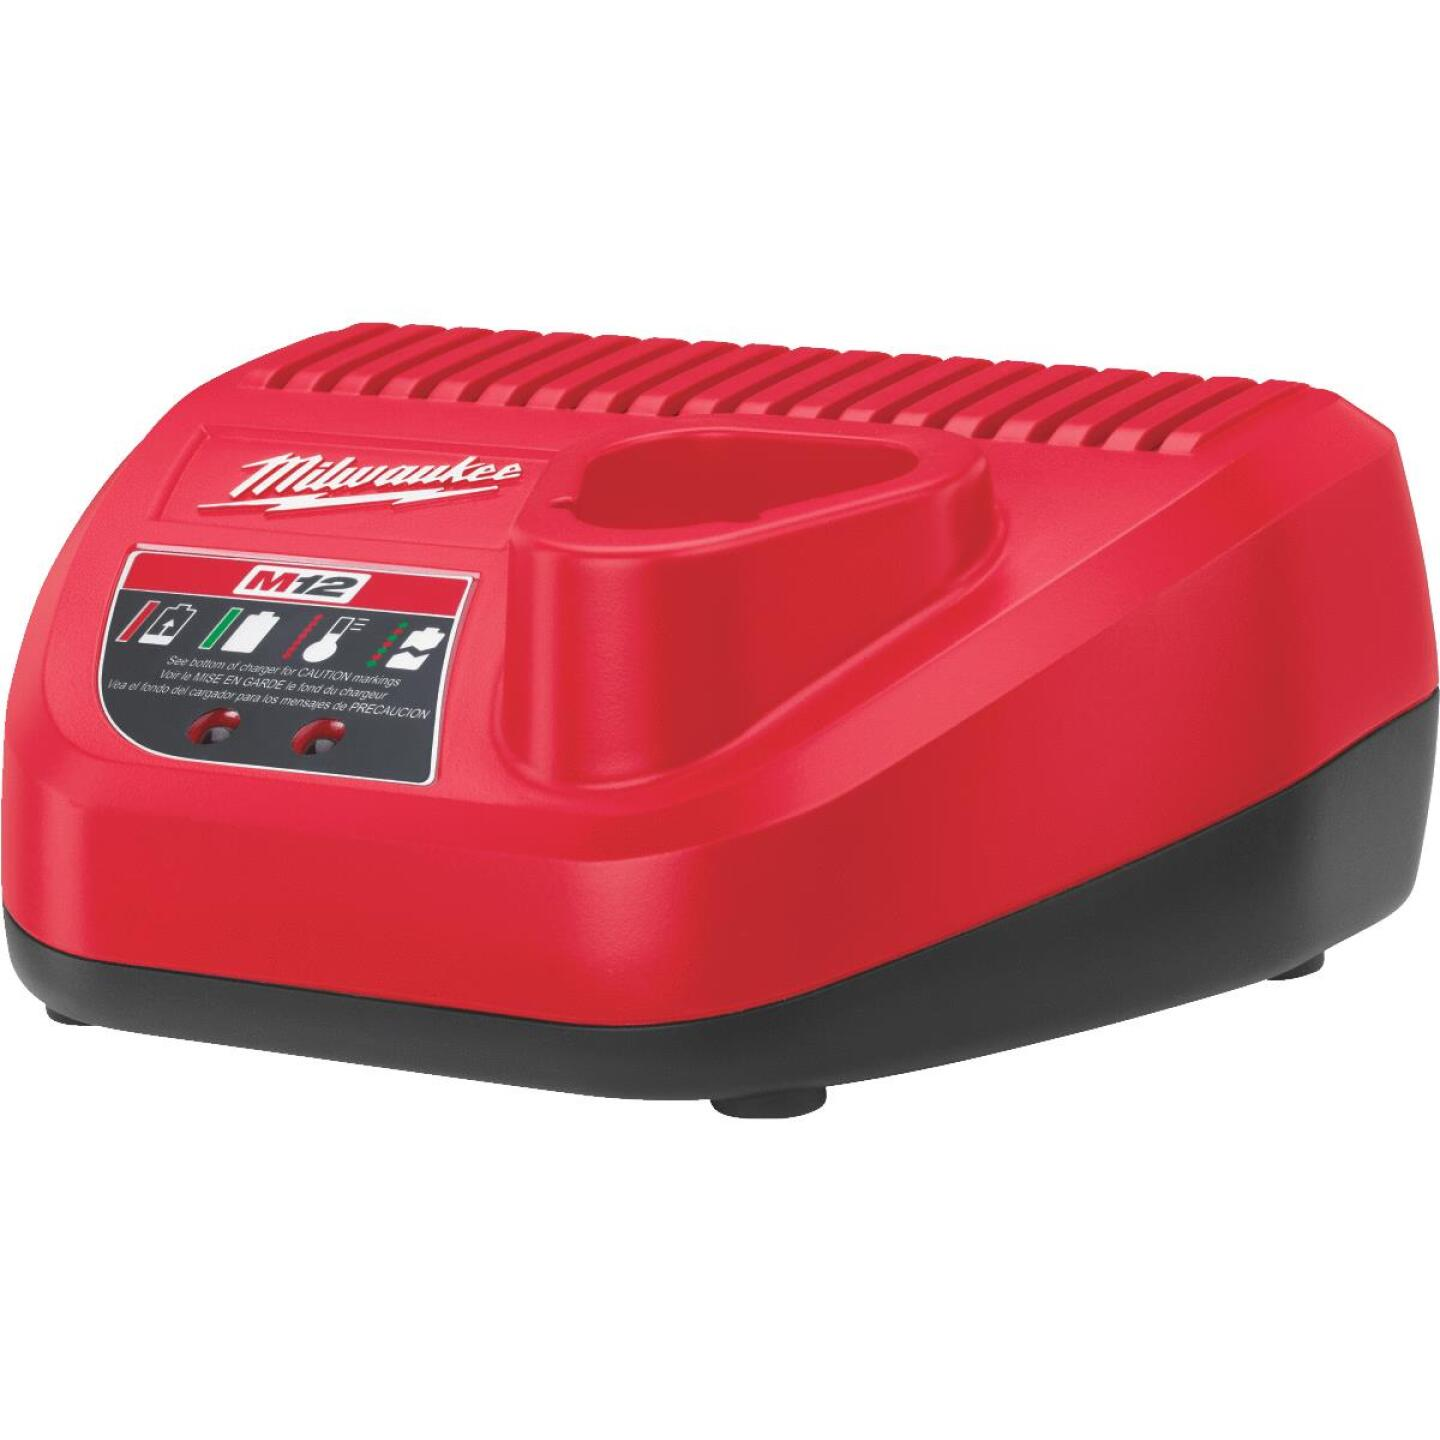 Milwaukee M12 12 Volt Lithium-Ion Battery Charger Image 3